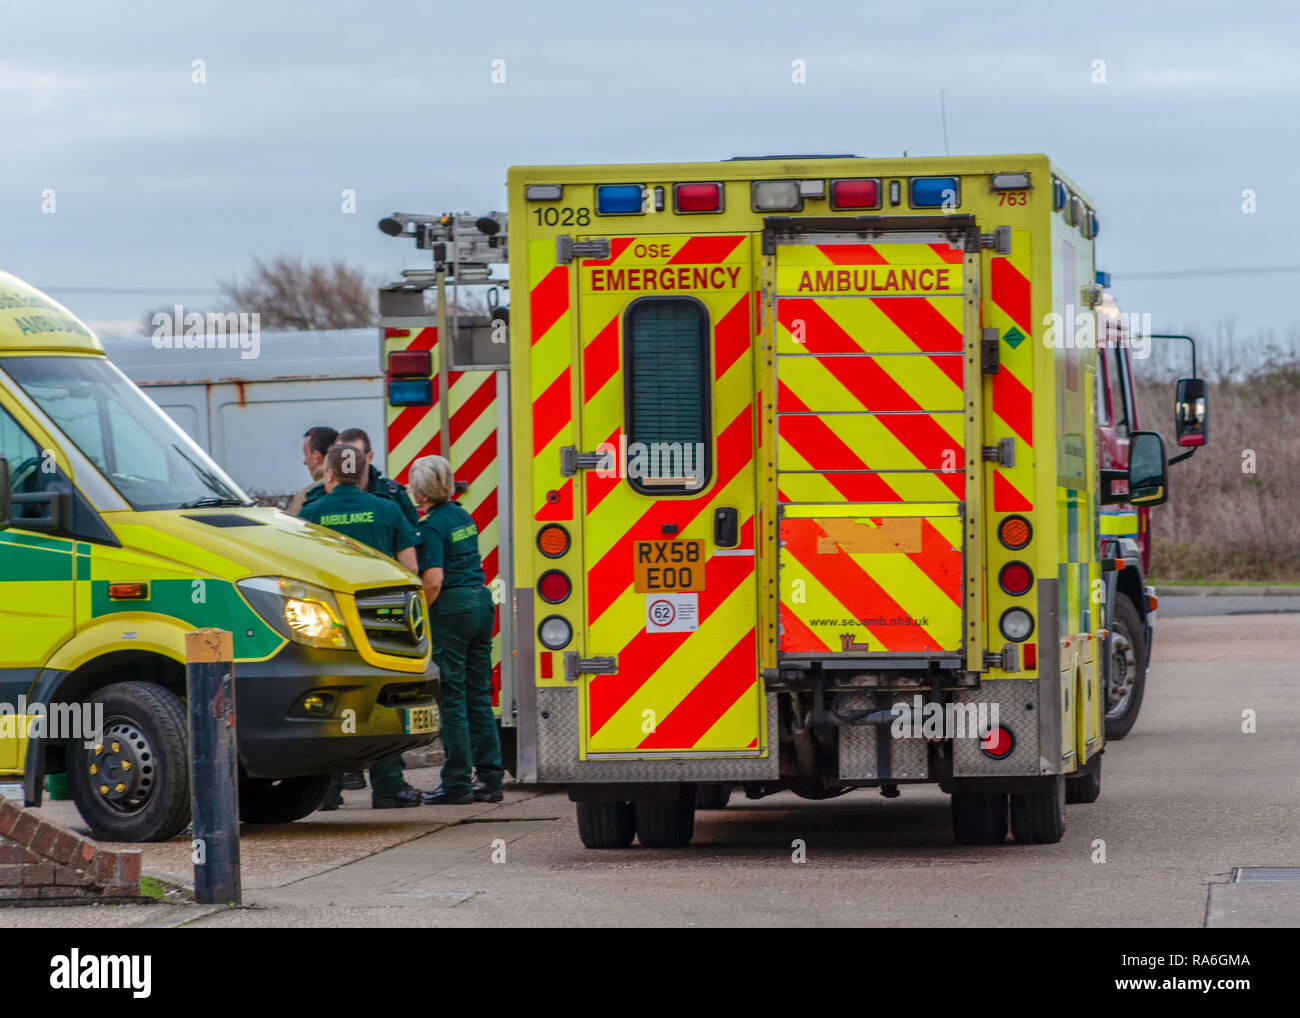 Westham, Sussex, UK. 2nd Jan 2018: Fire crews from Battle, Bexhill, The Ridge, Hastings, Eastbourne and Seaford were called to a fire at a car maintenance unit on Eastbourne Road, Westham. Credit: SEUK News/Alamy Live News Stock Photo